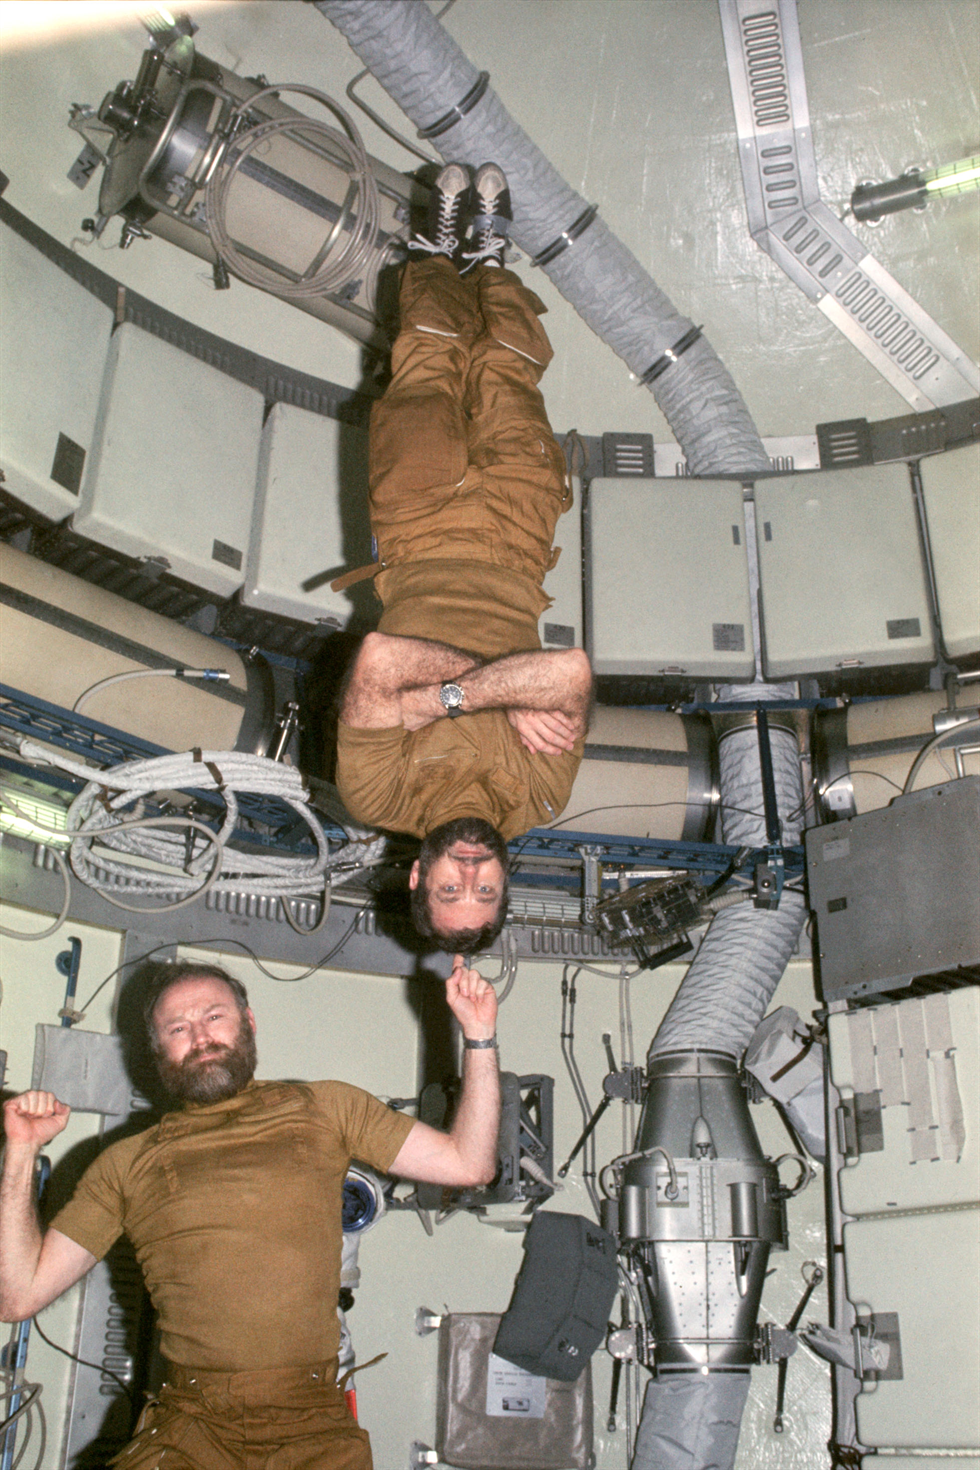 NASA astronauts Gerald Carr (left) and William Pogue demonstrate zero-g aboard Skylab. Image Credit: NASA